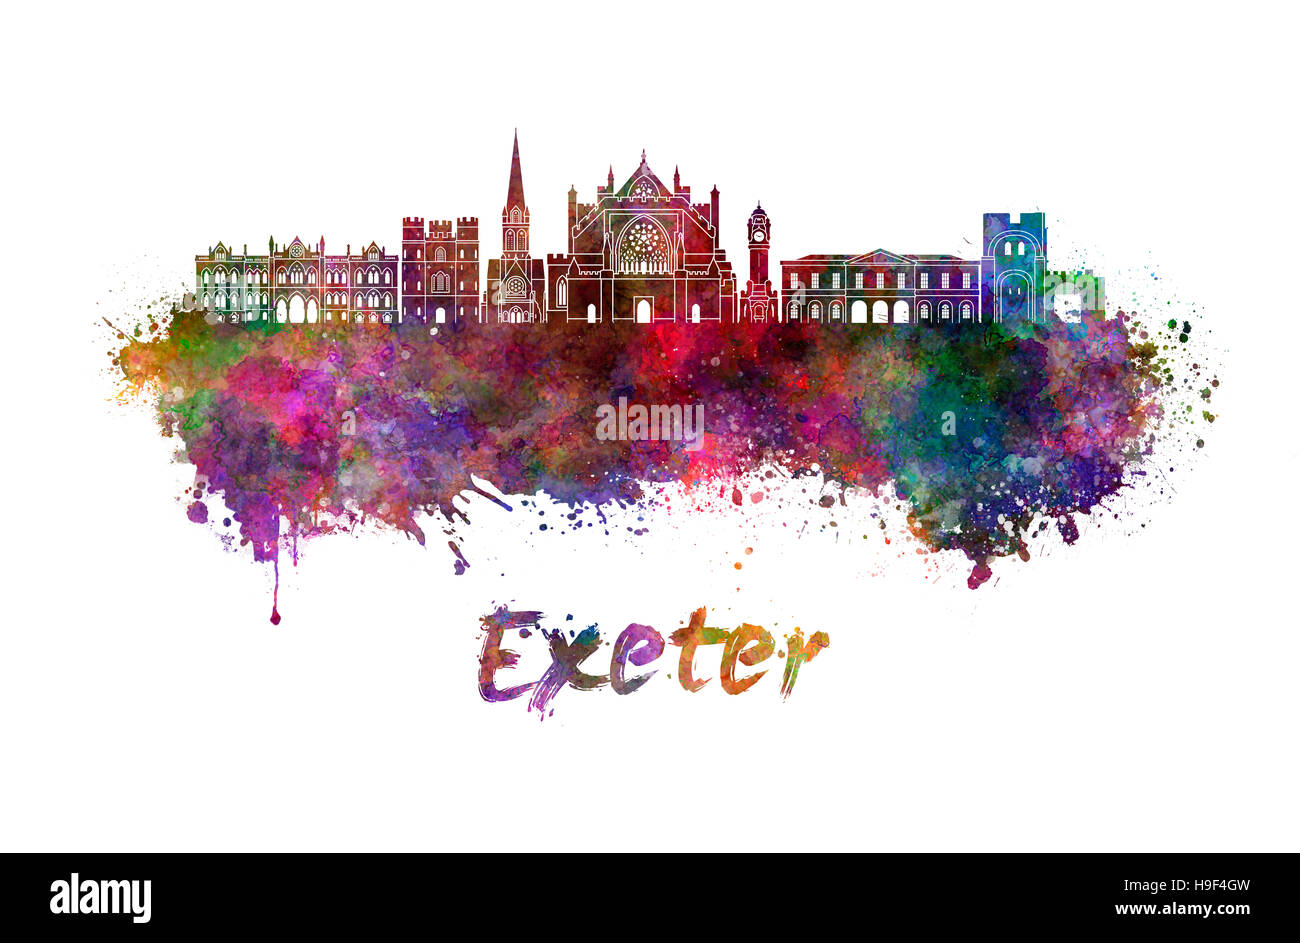 Exeter skyline in watercolor splatters with clipping path - Stock Image